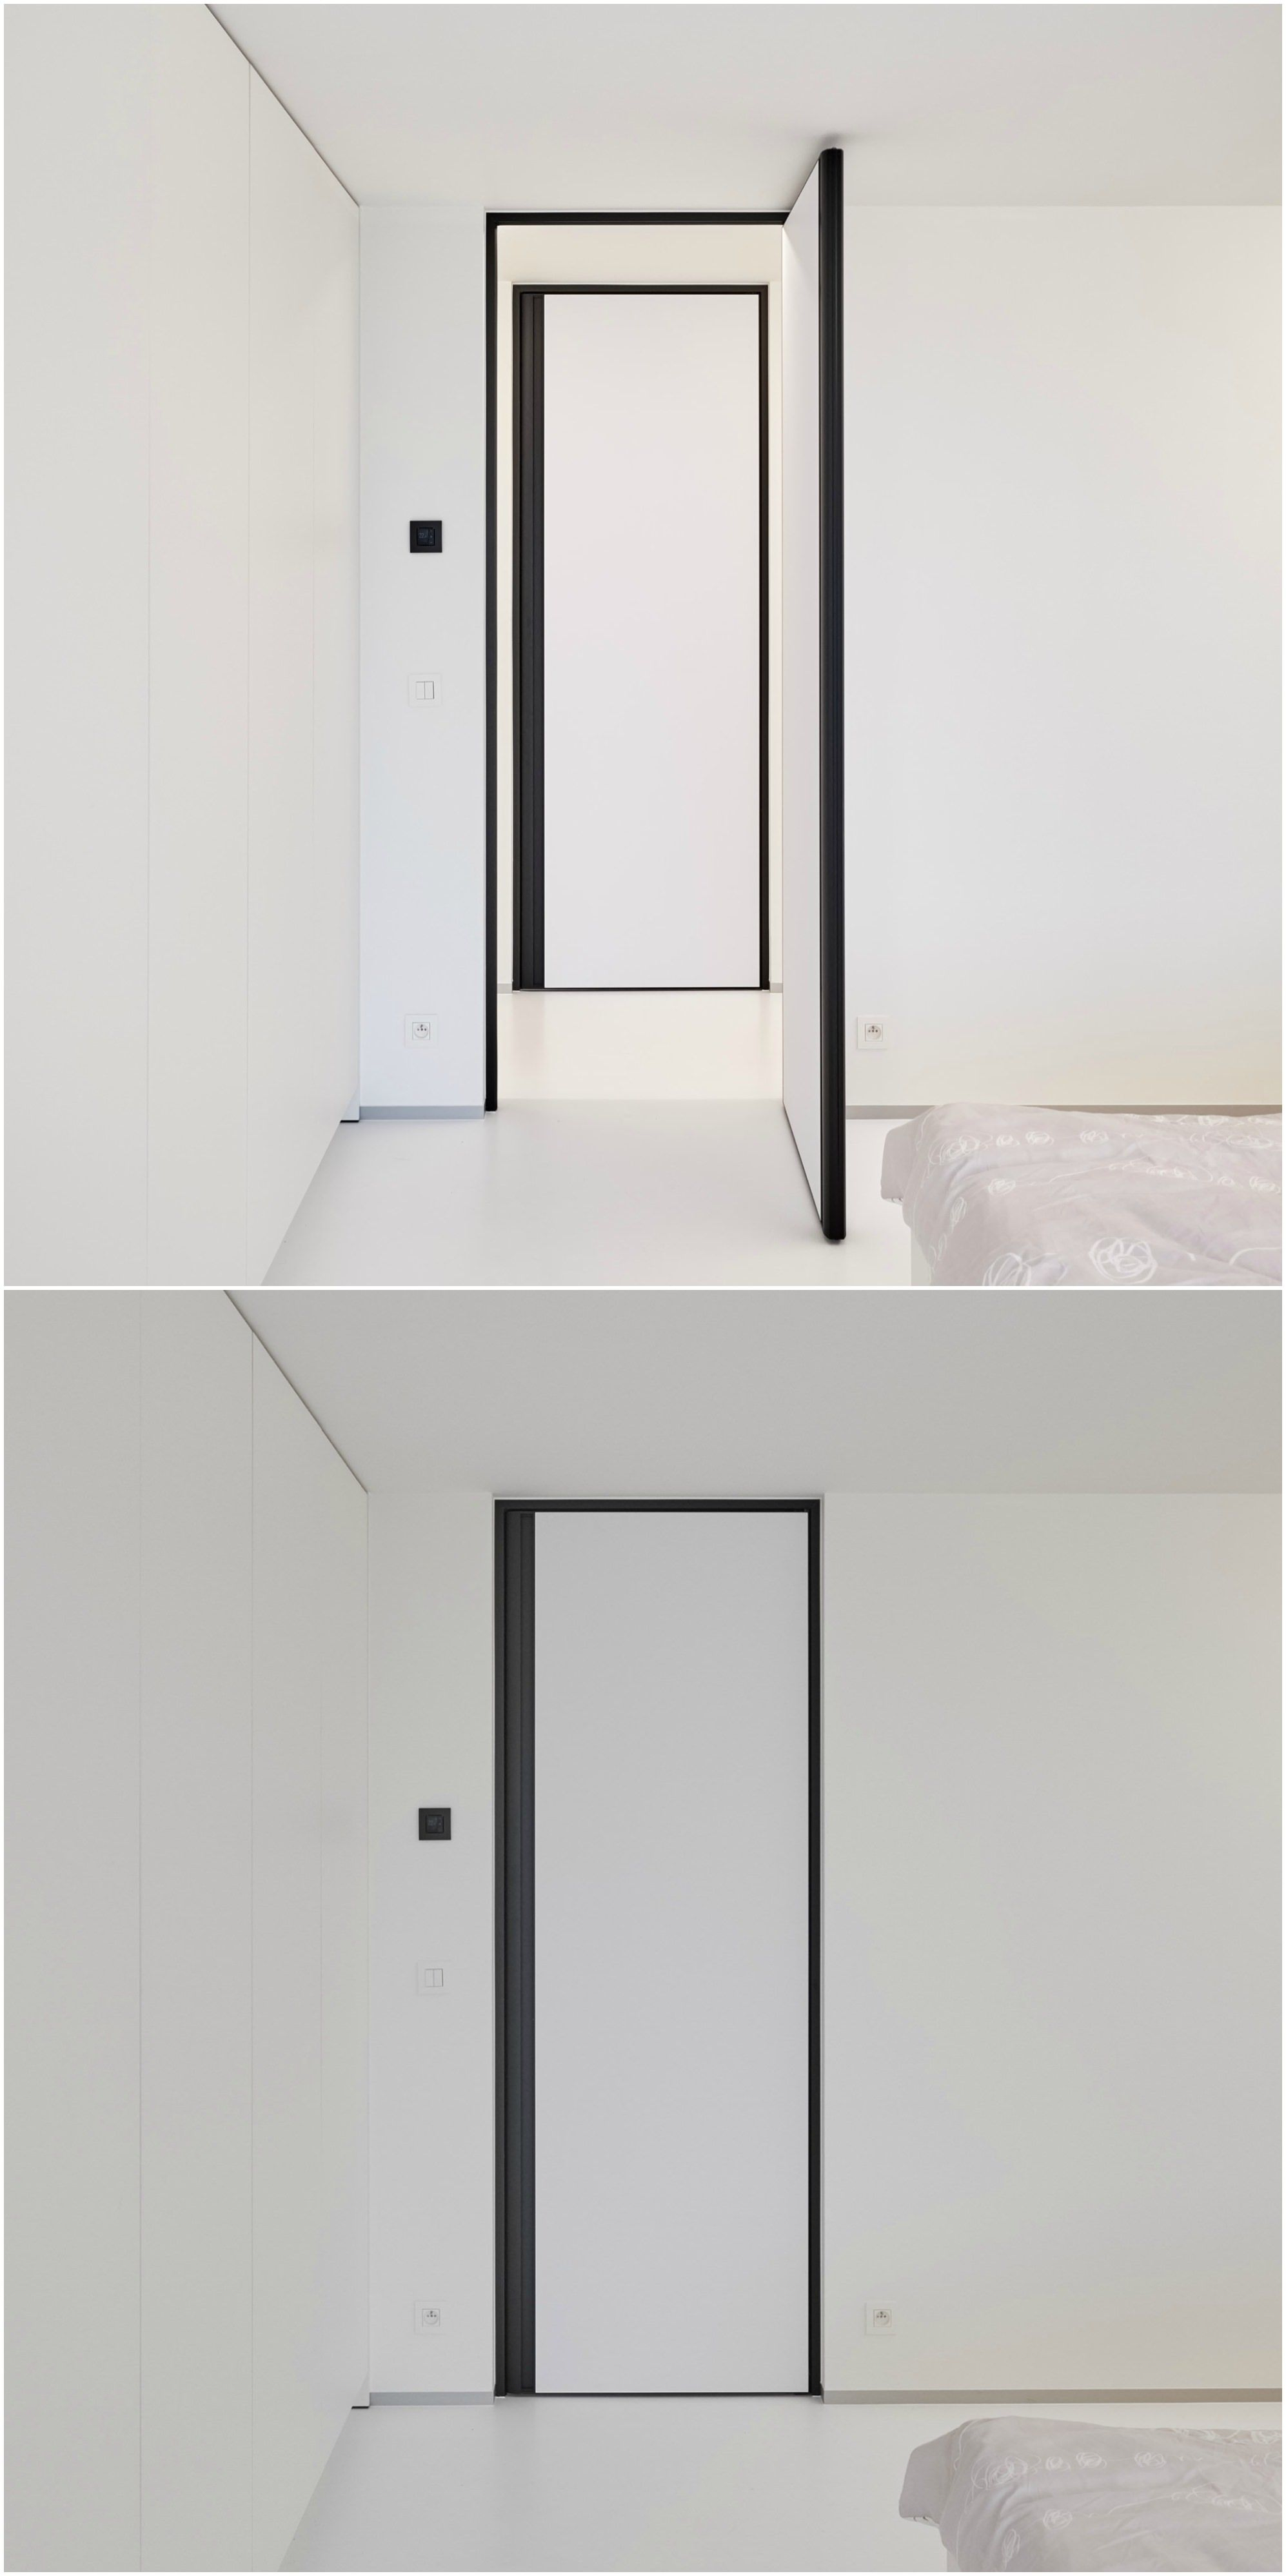 porte int rieure moderne toute hauteur anywaydoors portes int rieures modernes pinterest. Black Bedroom Furniture Sets. Home Design Ideas